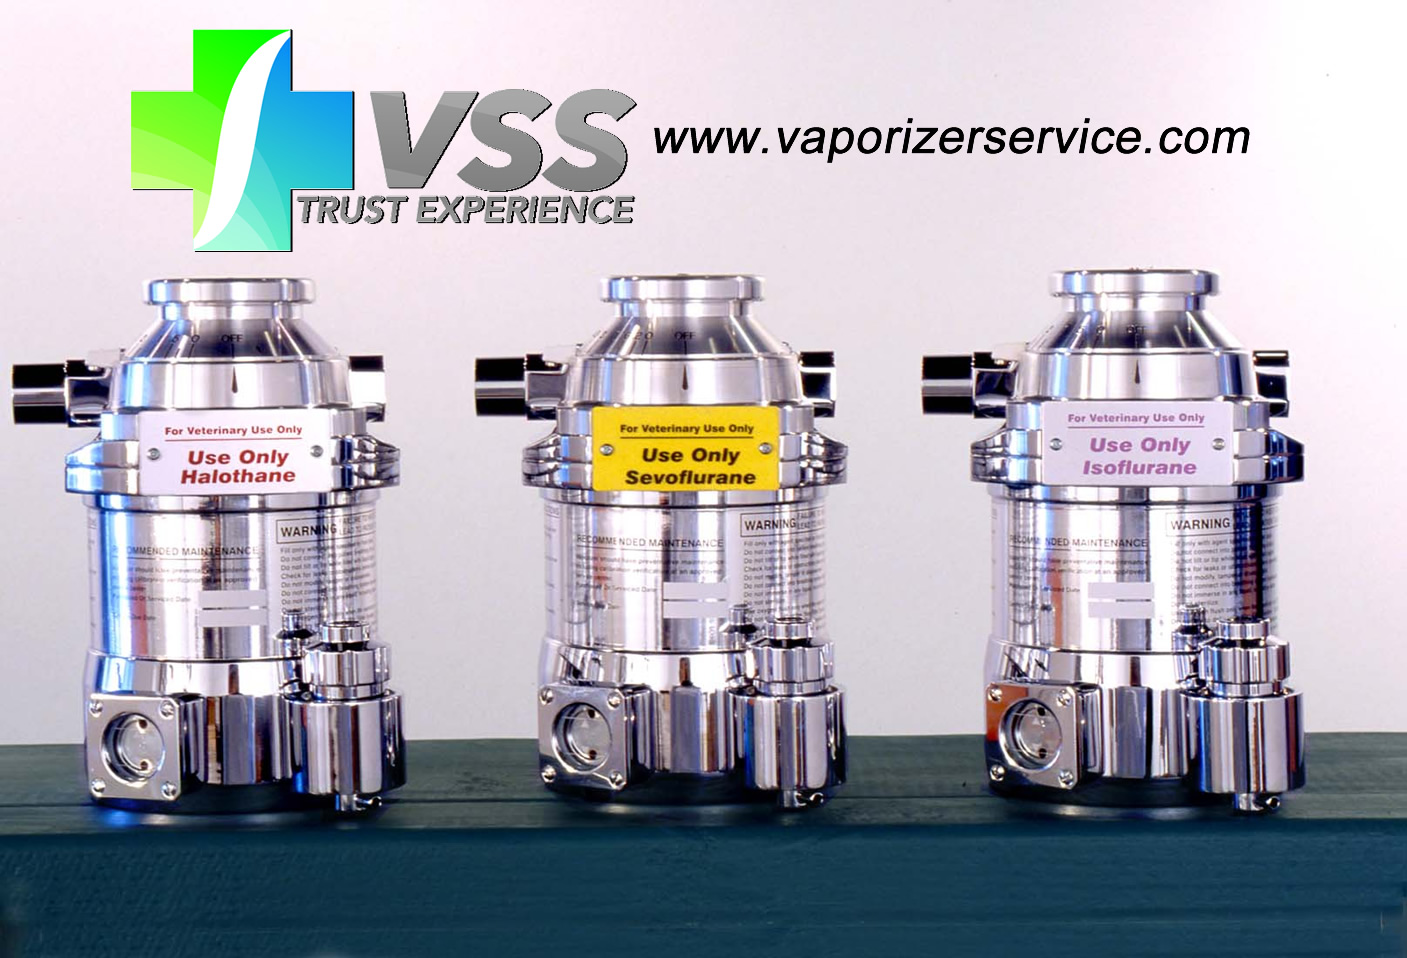 Veterinary Vaporizers | Anesthetic Vapor Delivery Device | www.vaporizerservice.com